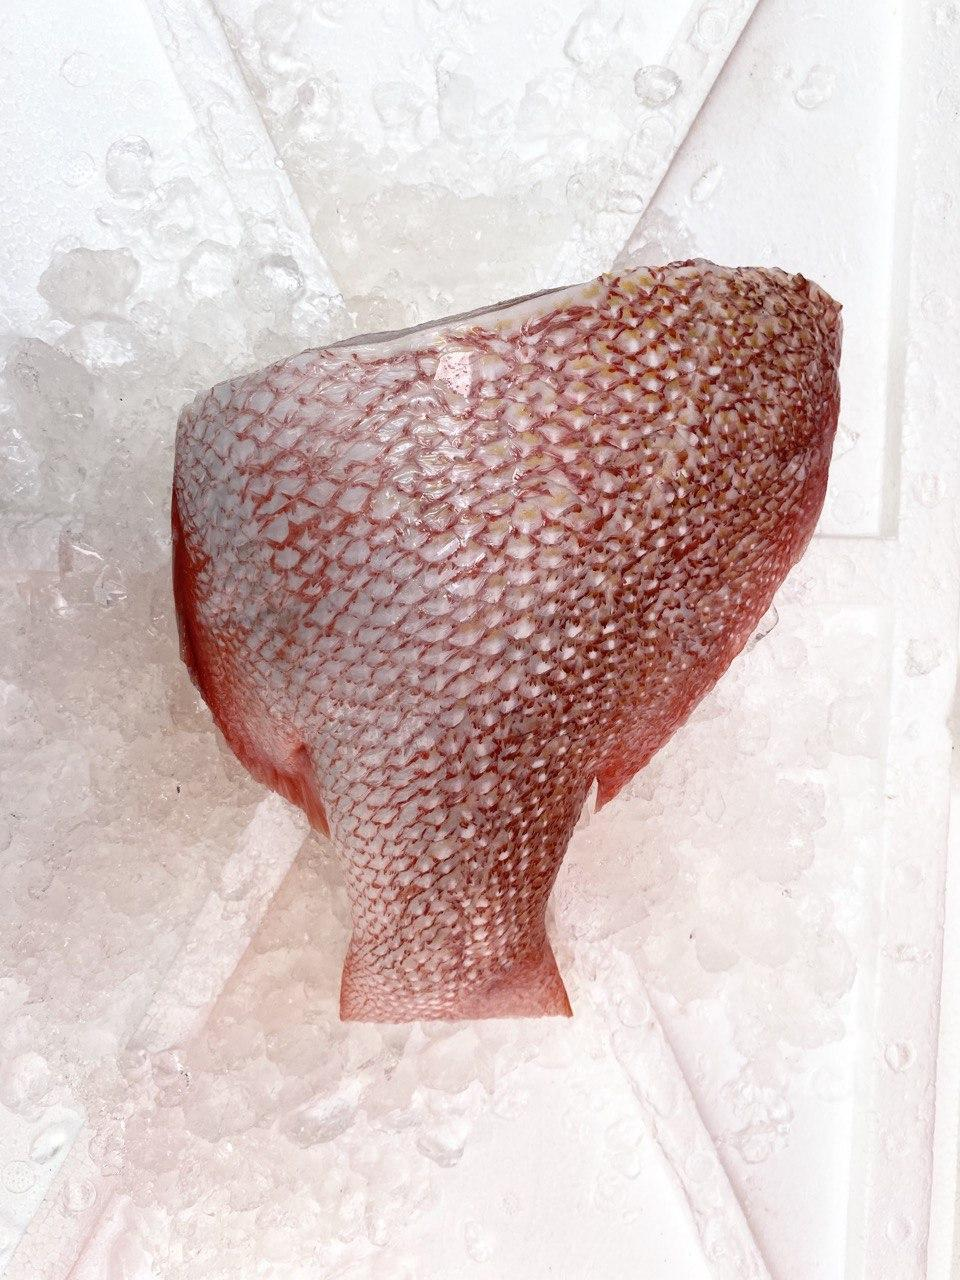 Emperor Red Snapper, Tail Section, Fresh (~800G-1 KG)